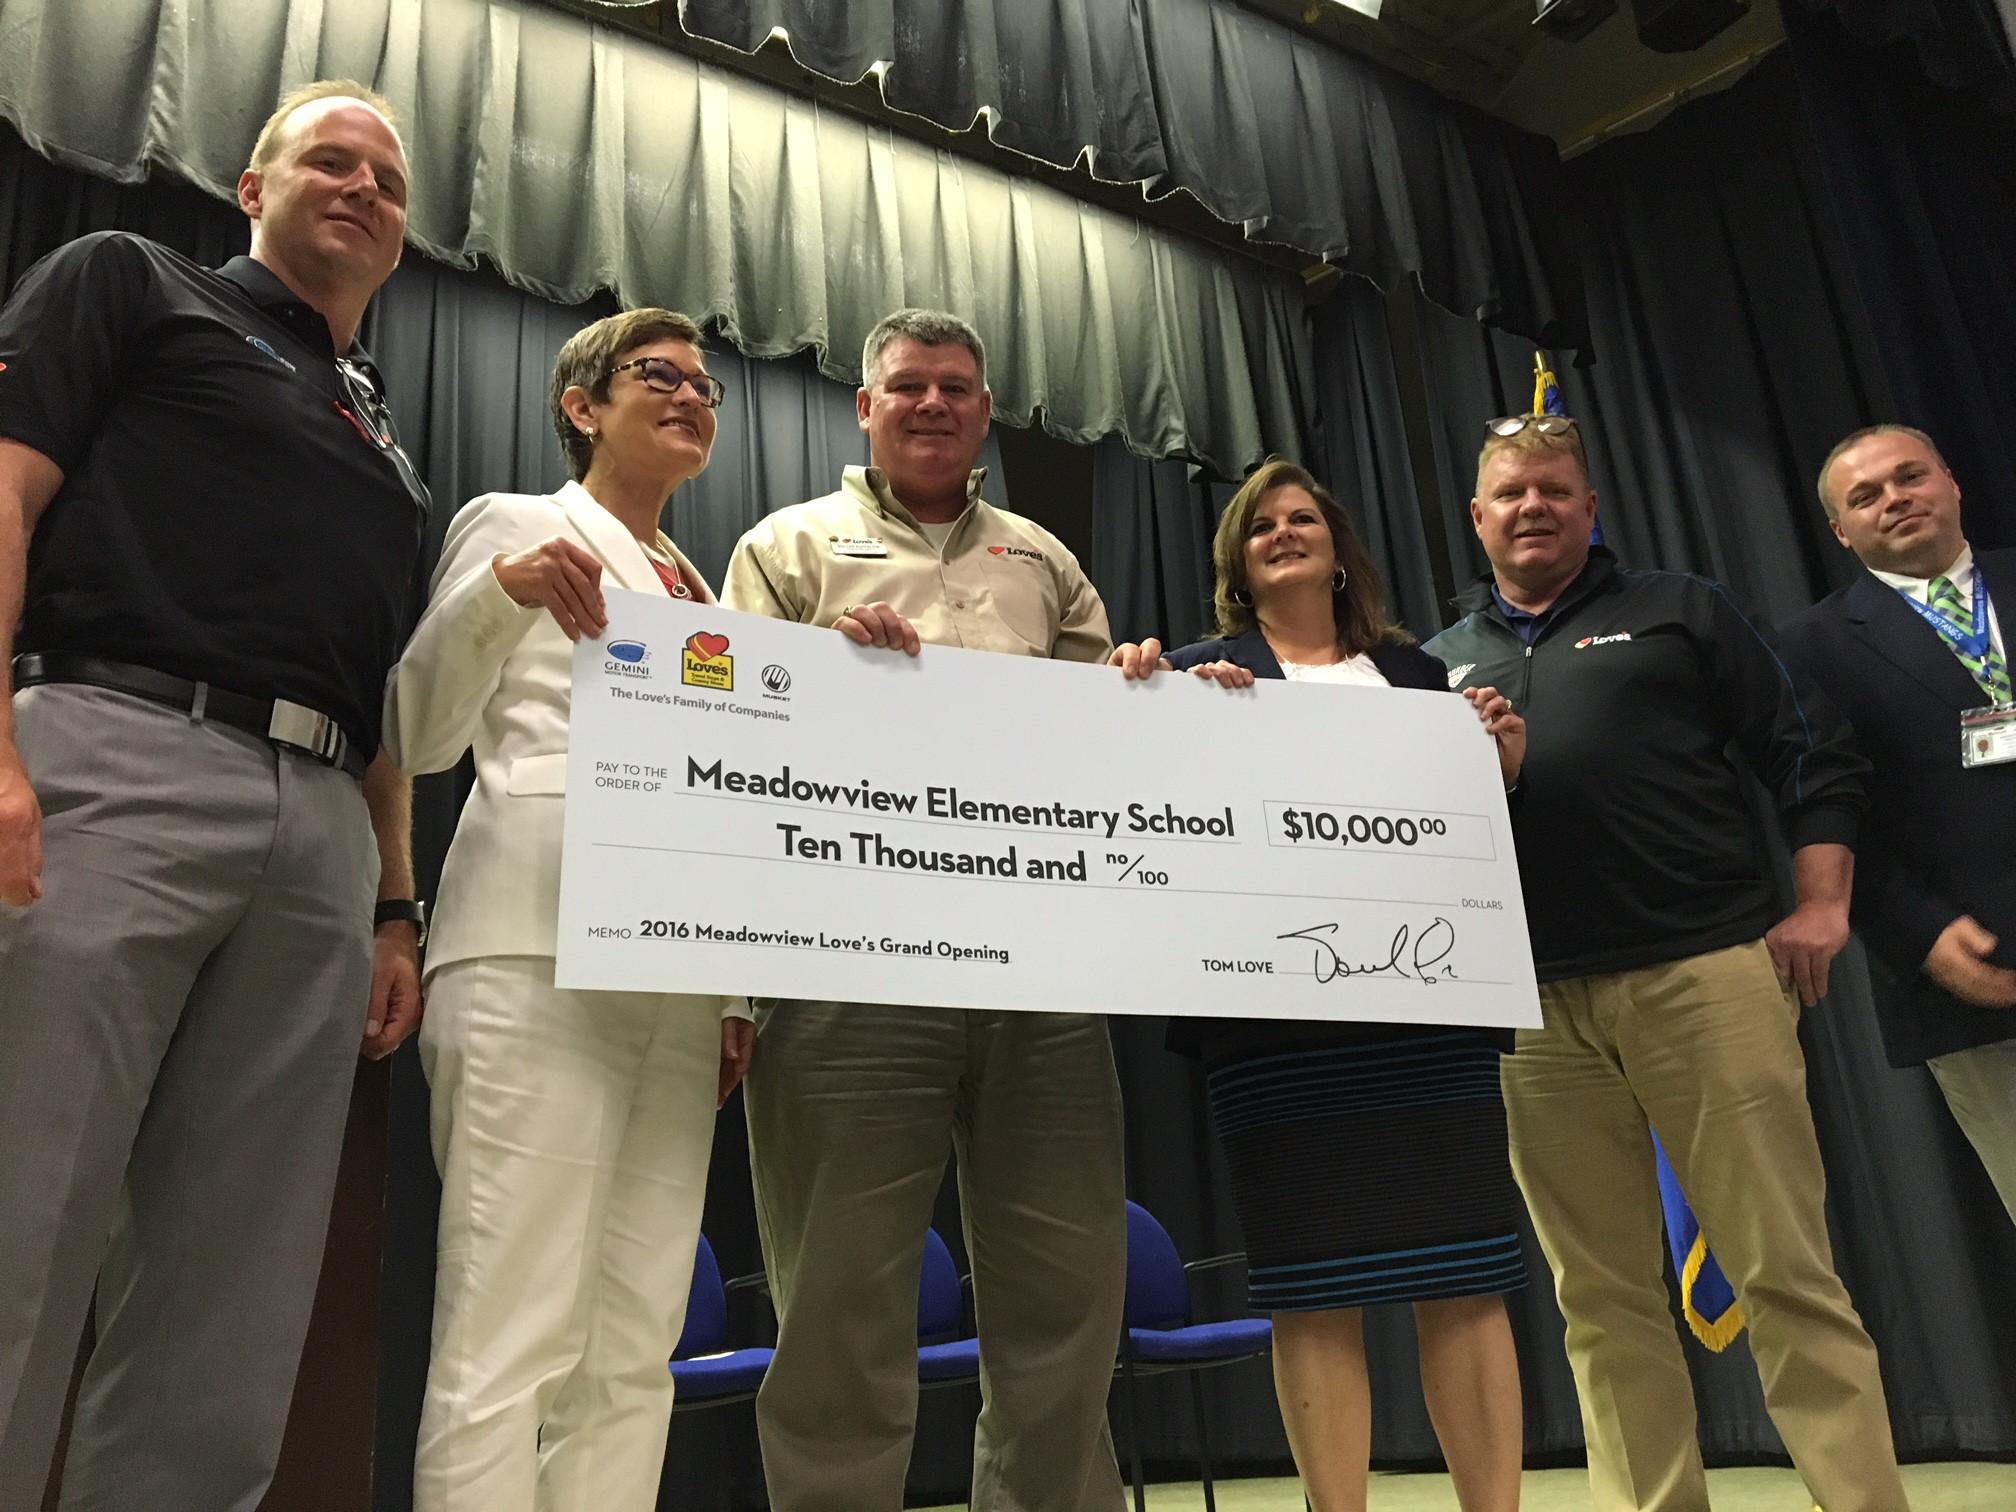 Meadowview Elementary School check presentation